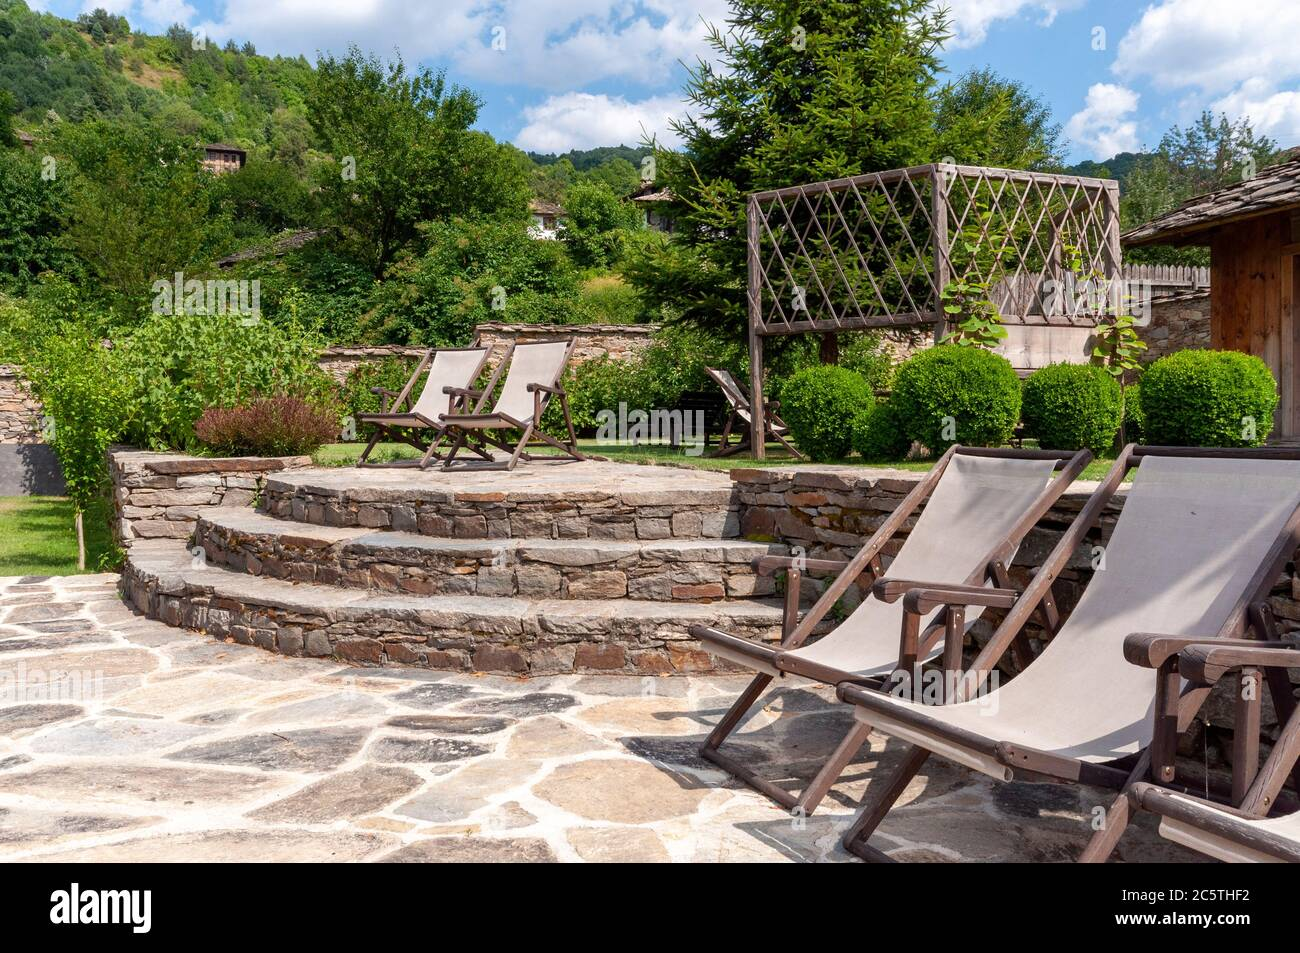 https www alamy com retro deck chairs or deckchairs with stone slabs or paving flags decking in outdoor backyard space and unique patio in old 19th century heritage house image365031606 html